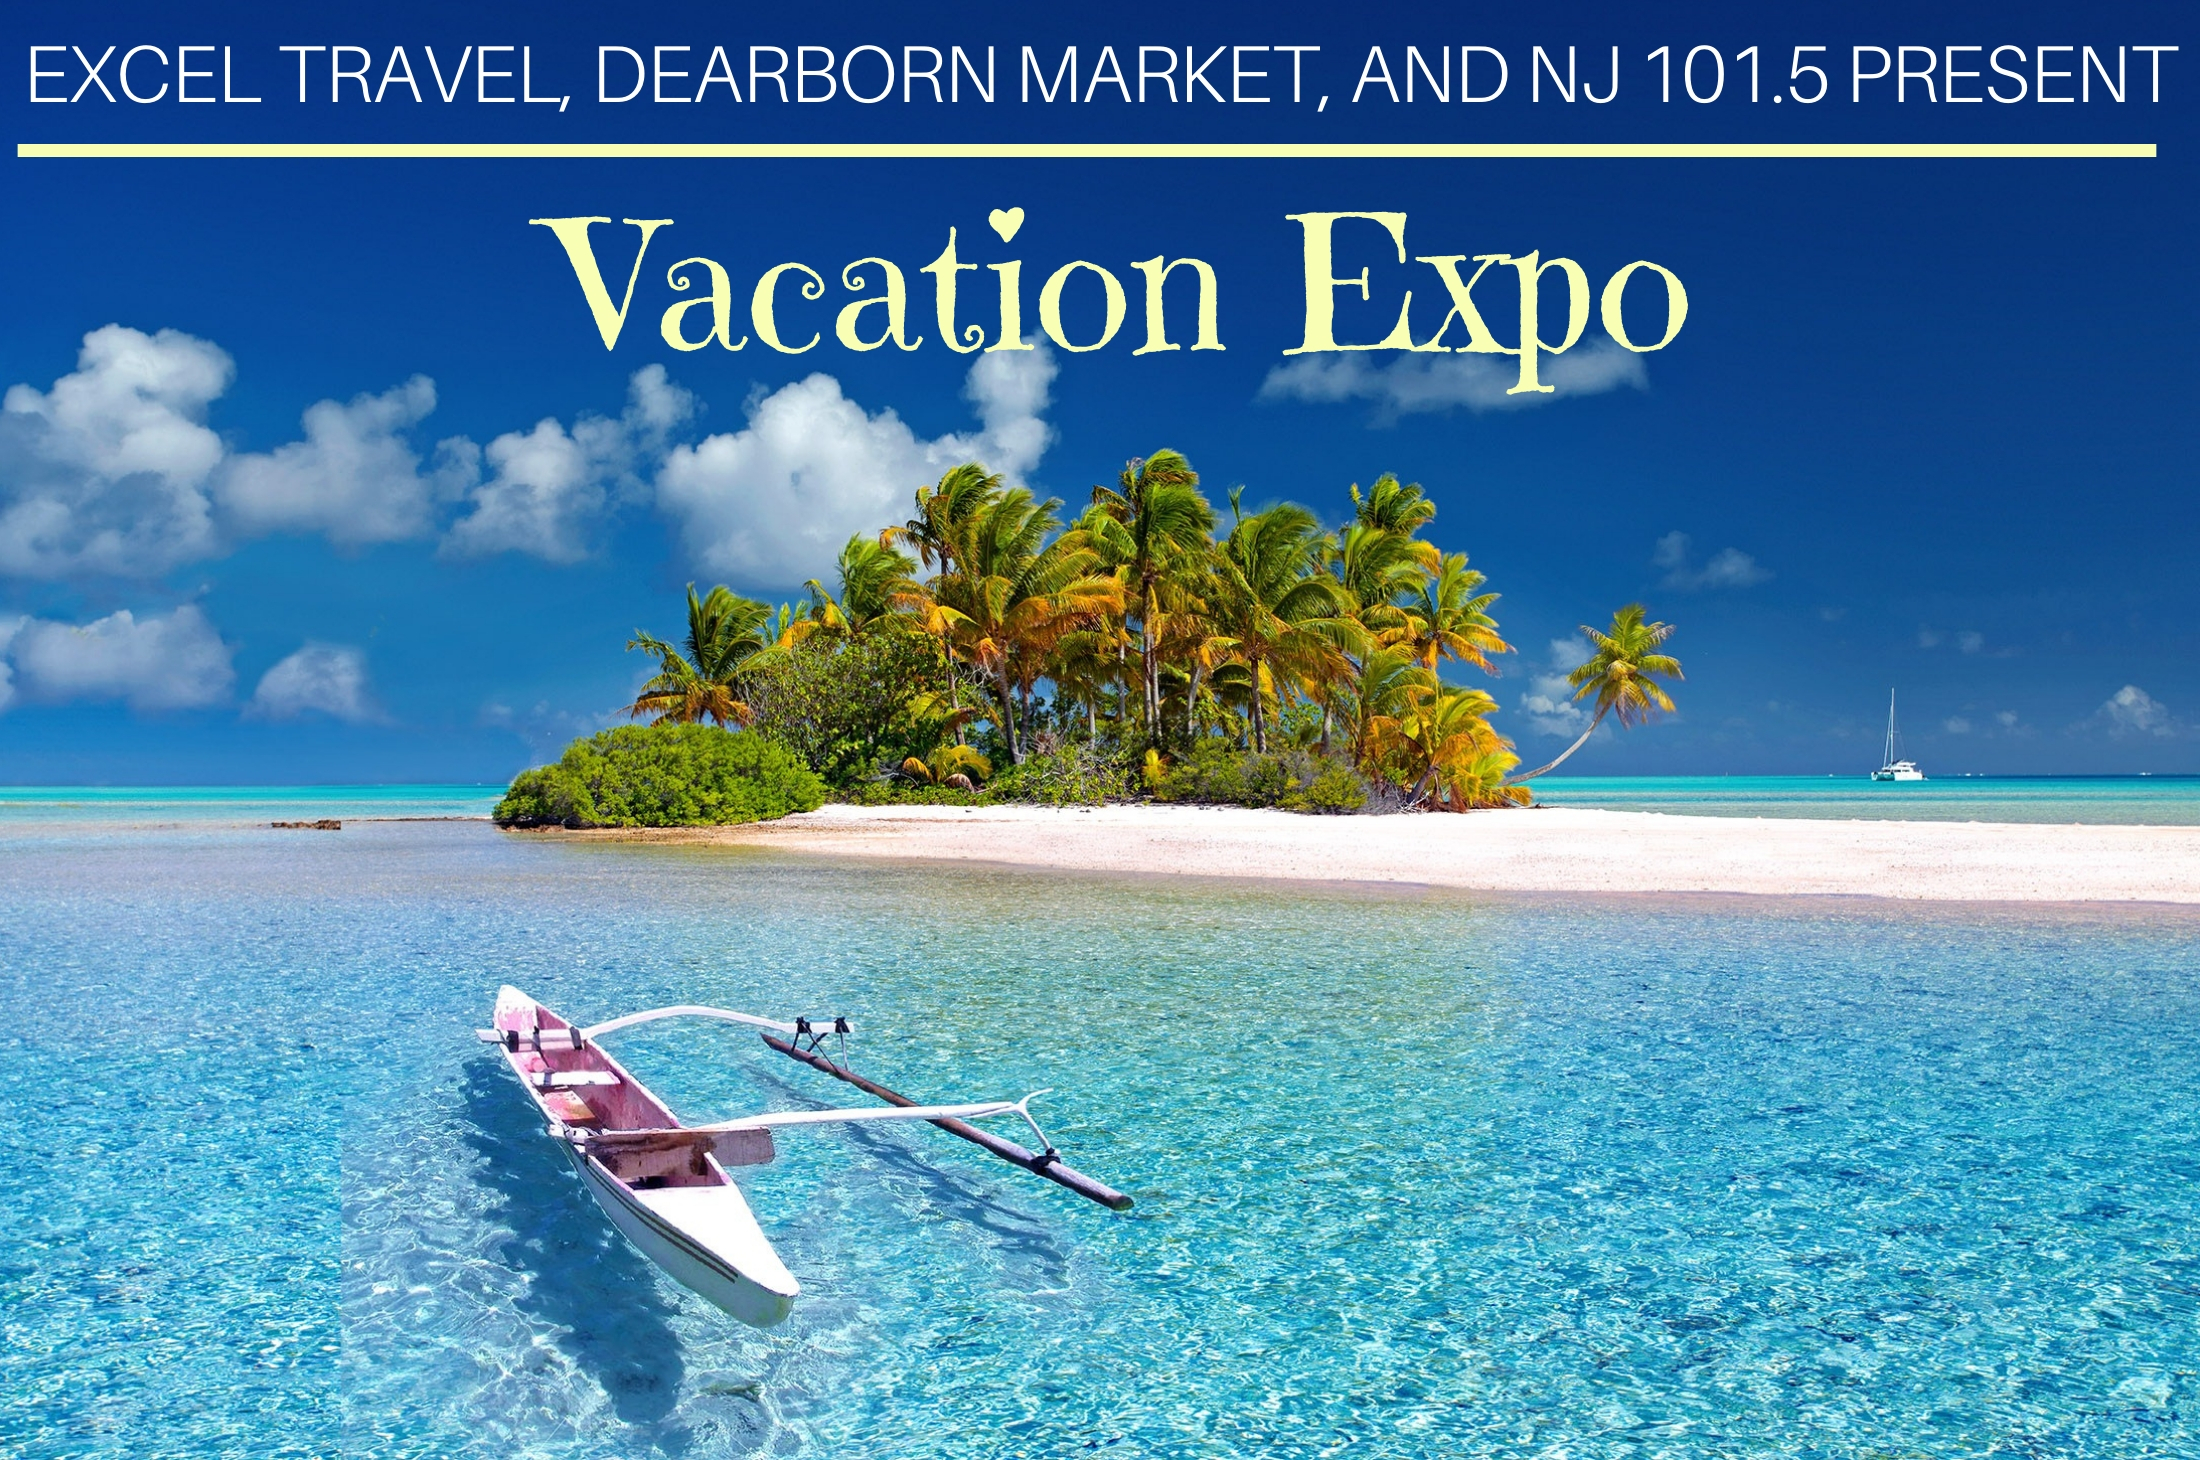 EXCEL TRAVEL, SCAN, NJ 101.5 AND CLUB MED PRESENT